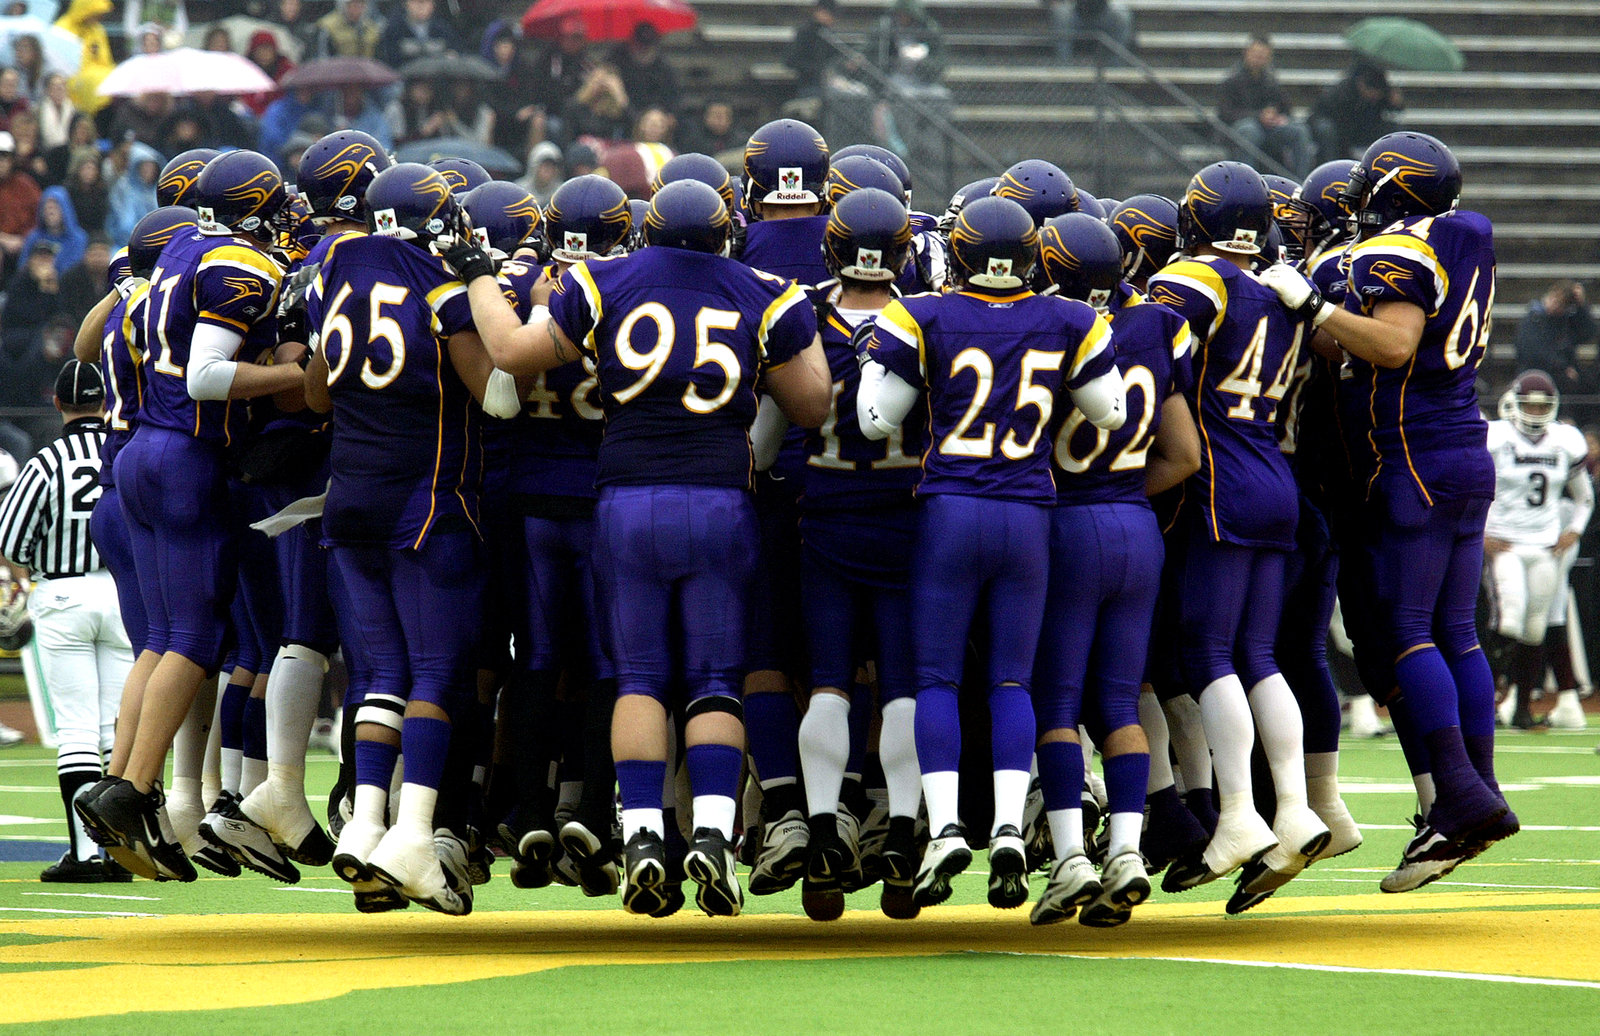 Wilfrid Laurier University Golden Hawks football team at 2005 OUA semi-final game